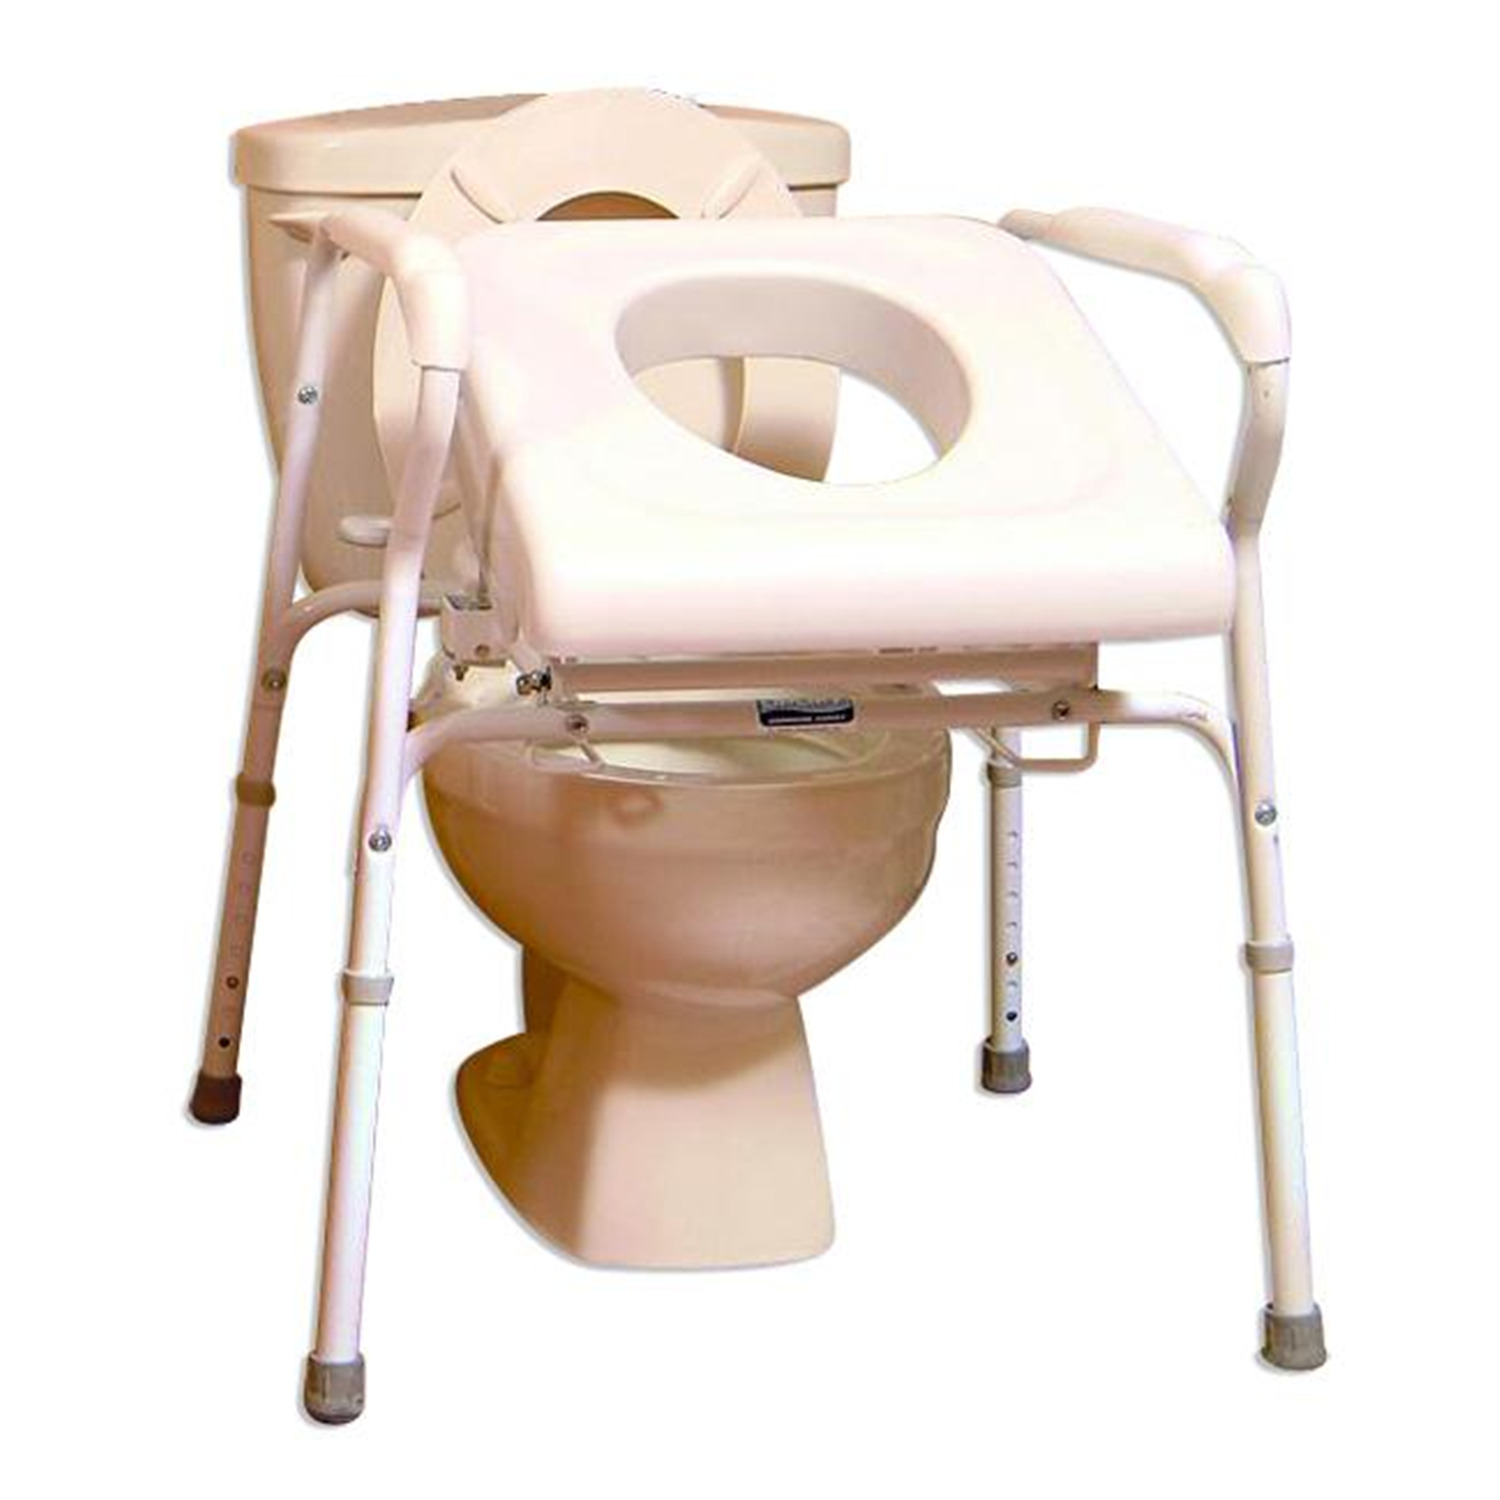 Uplift Technologies Uplift Commode Assist By Oj Commerce Uptca200